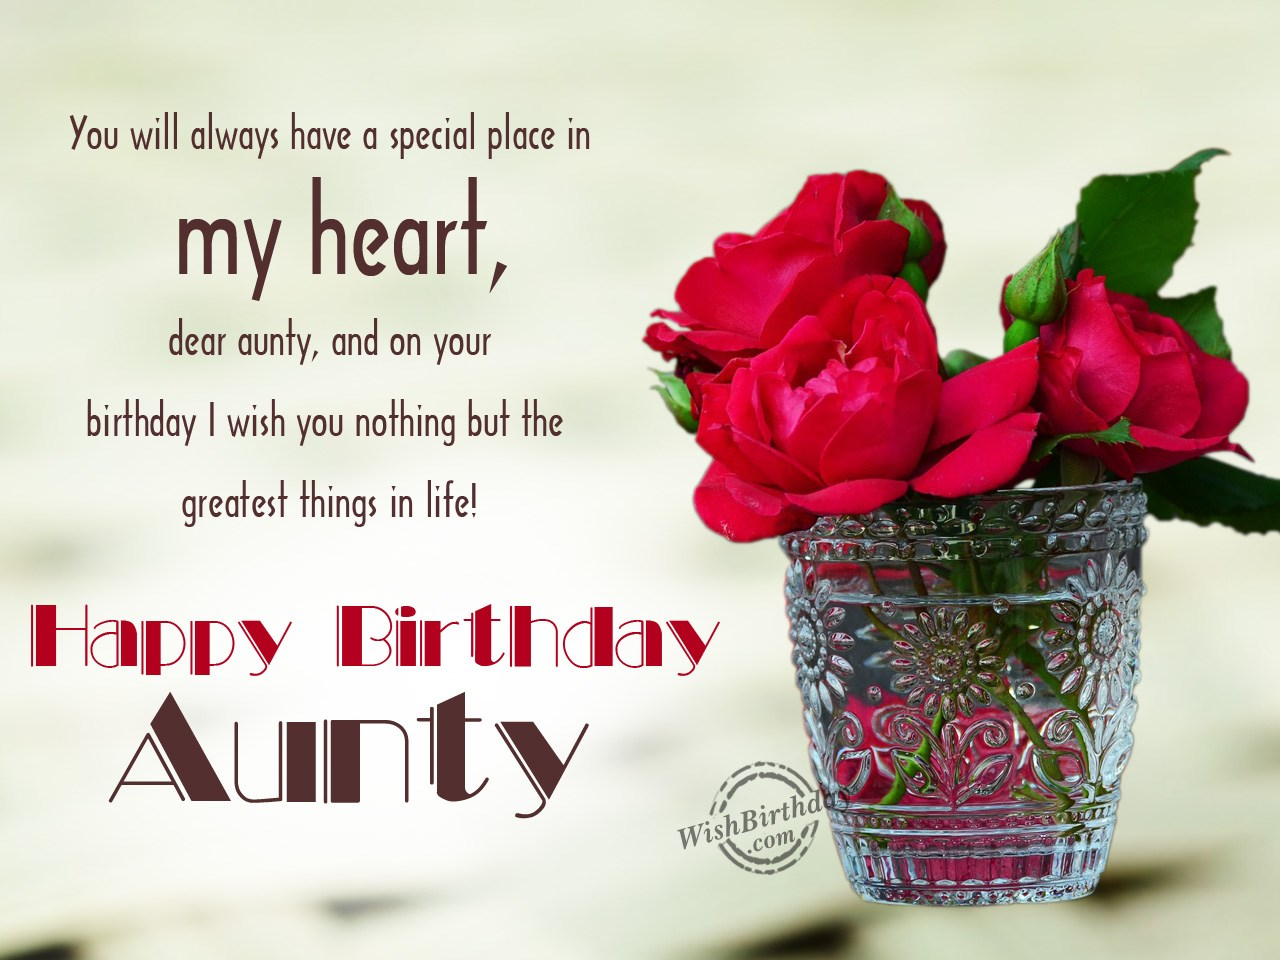 Birthday wishes for aunt birthday images pictures you will always have a special place in m4hsunfo